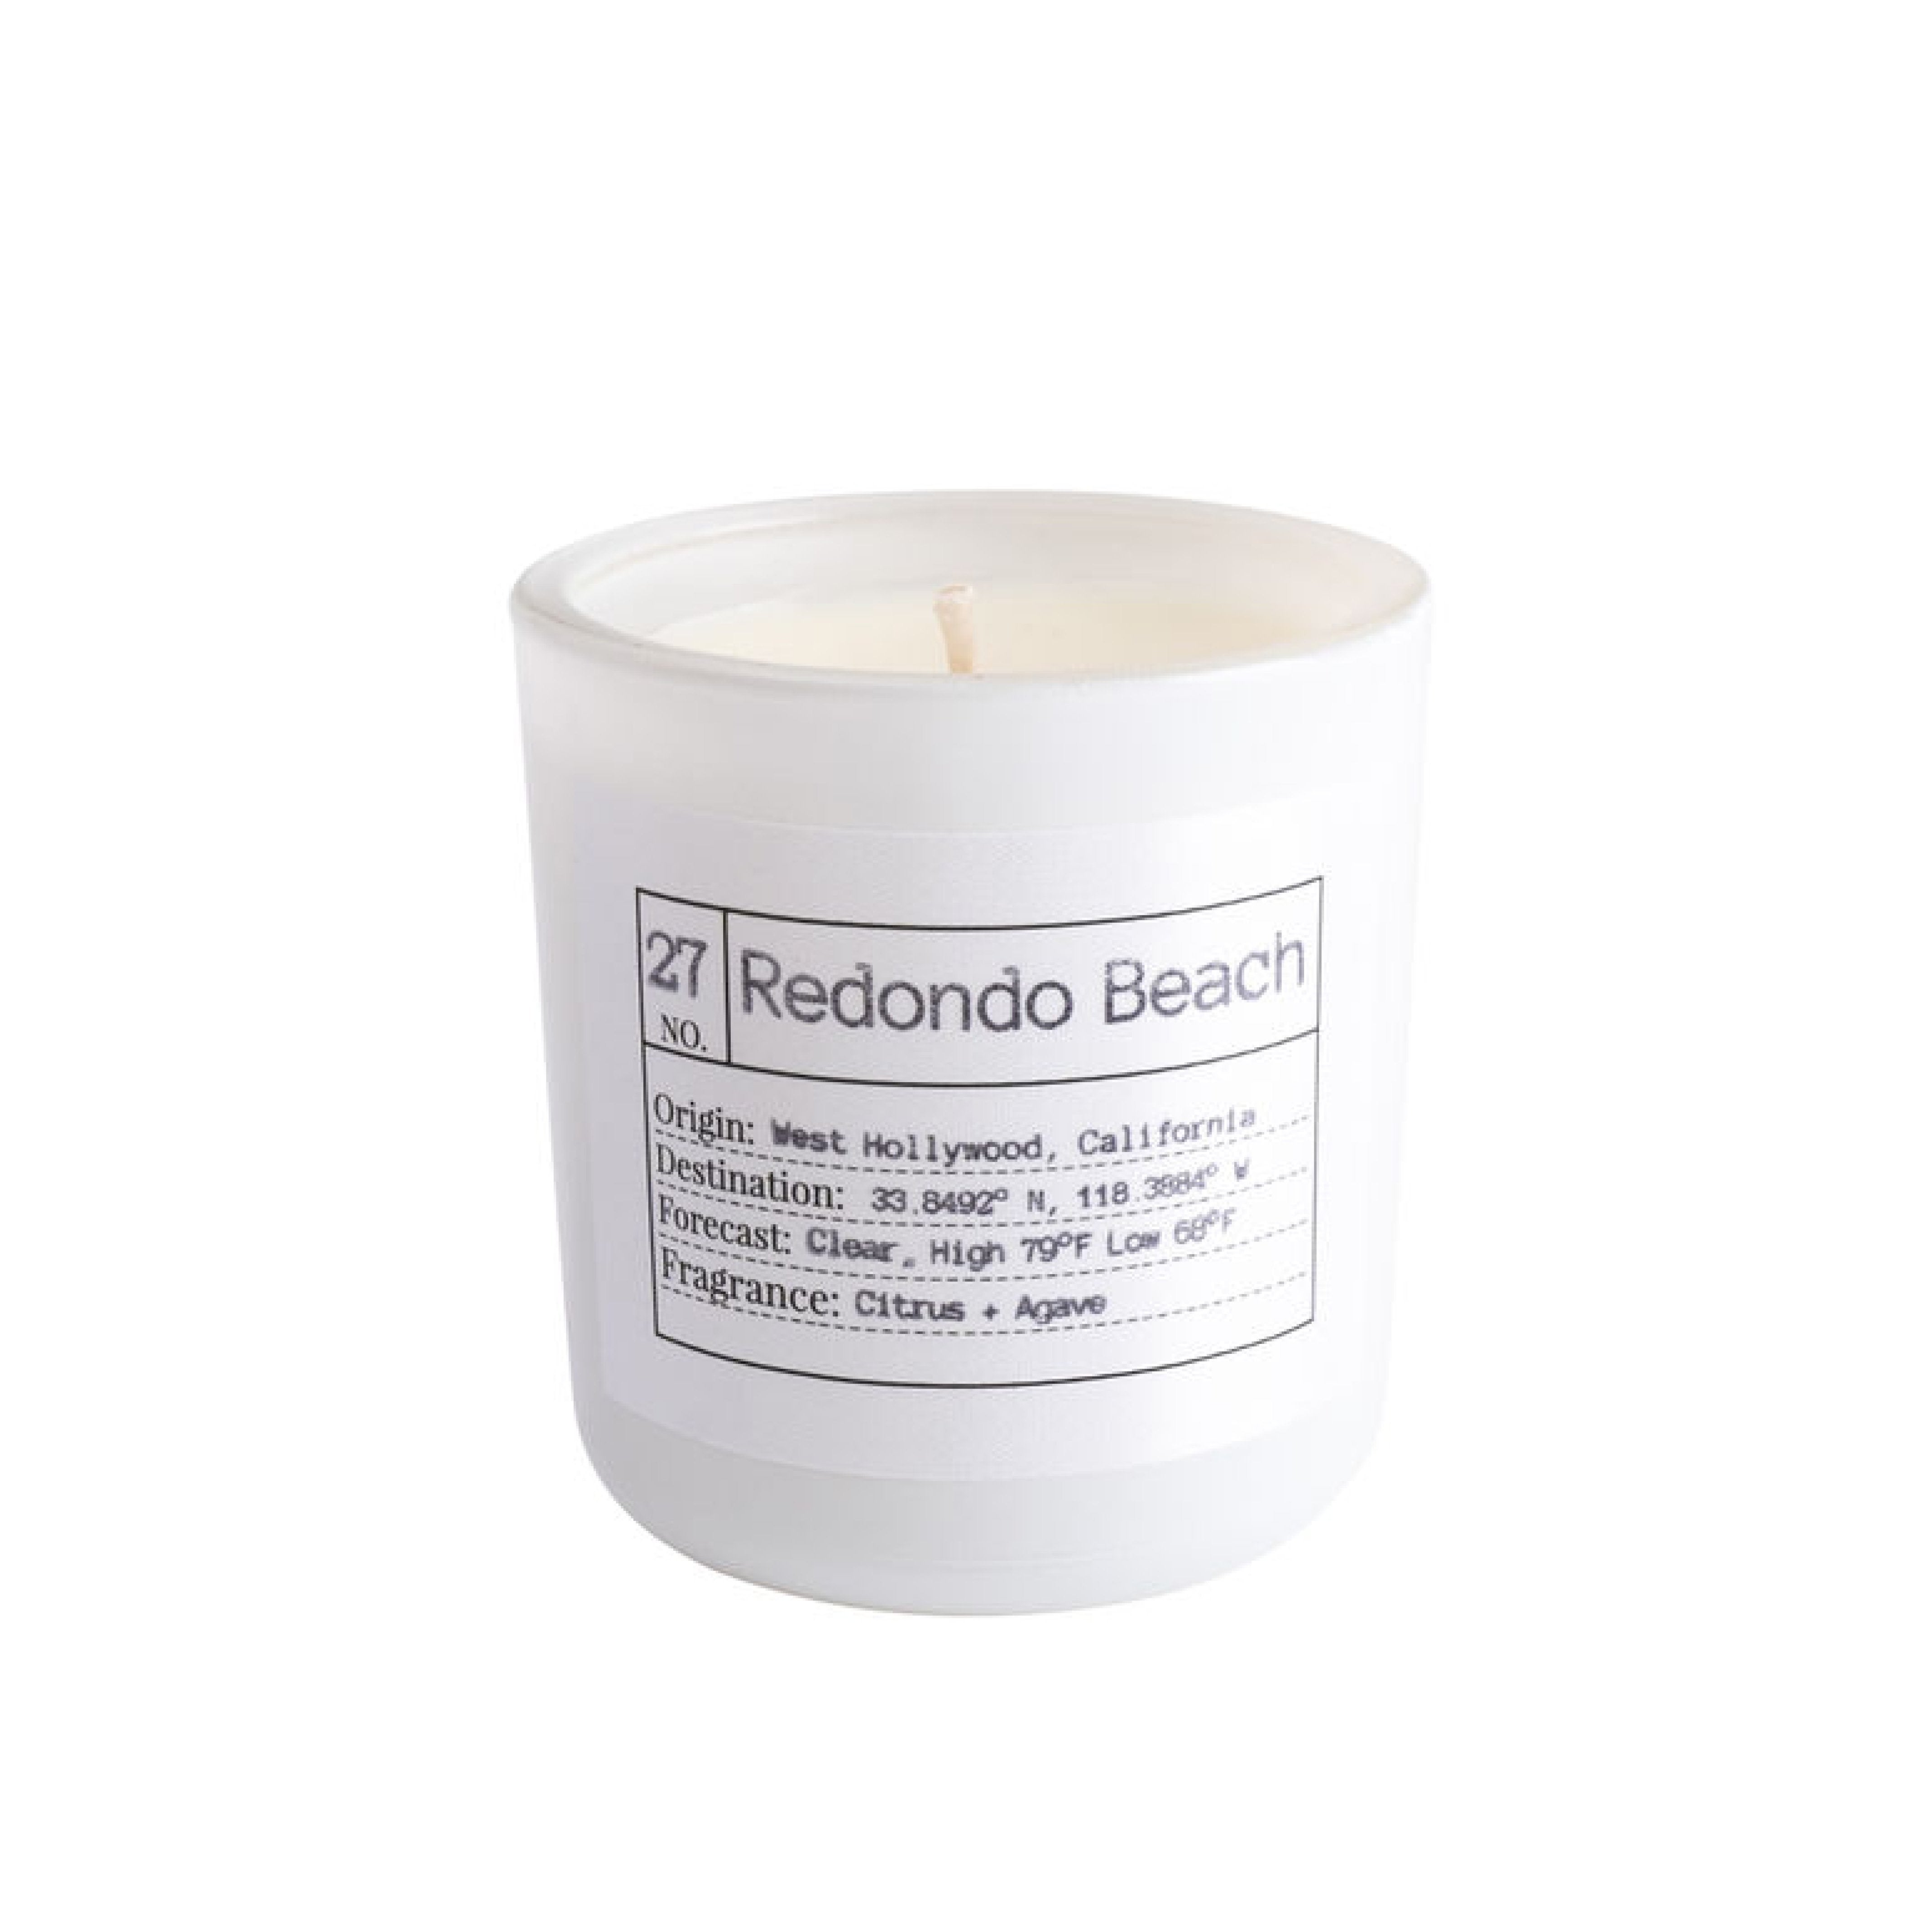 Flores Lane - Redondo Beach Candle Scent: Citrus + Agave Made of all natural soy wax and essential oils